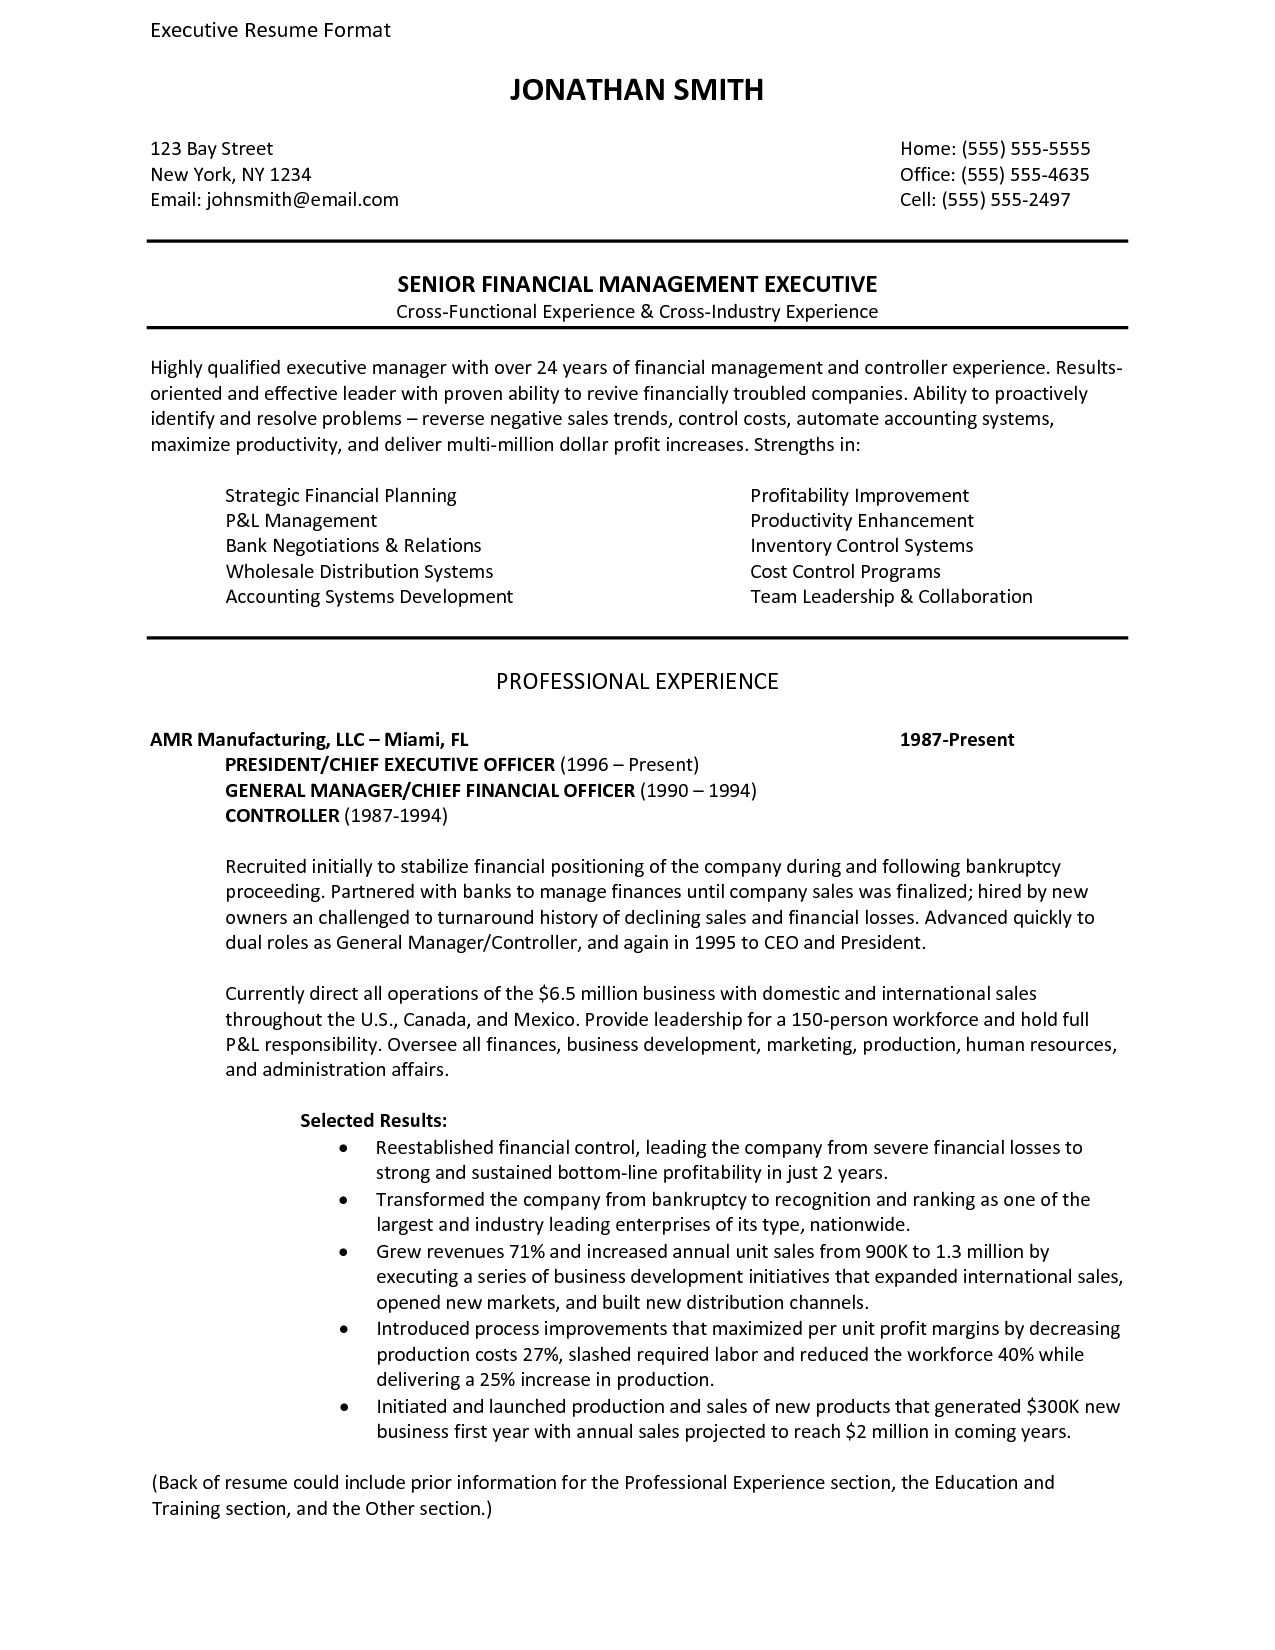 Fmcg Format Sample Executive Resume Cover Letter  Executive Resume Formats And Examples